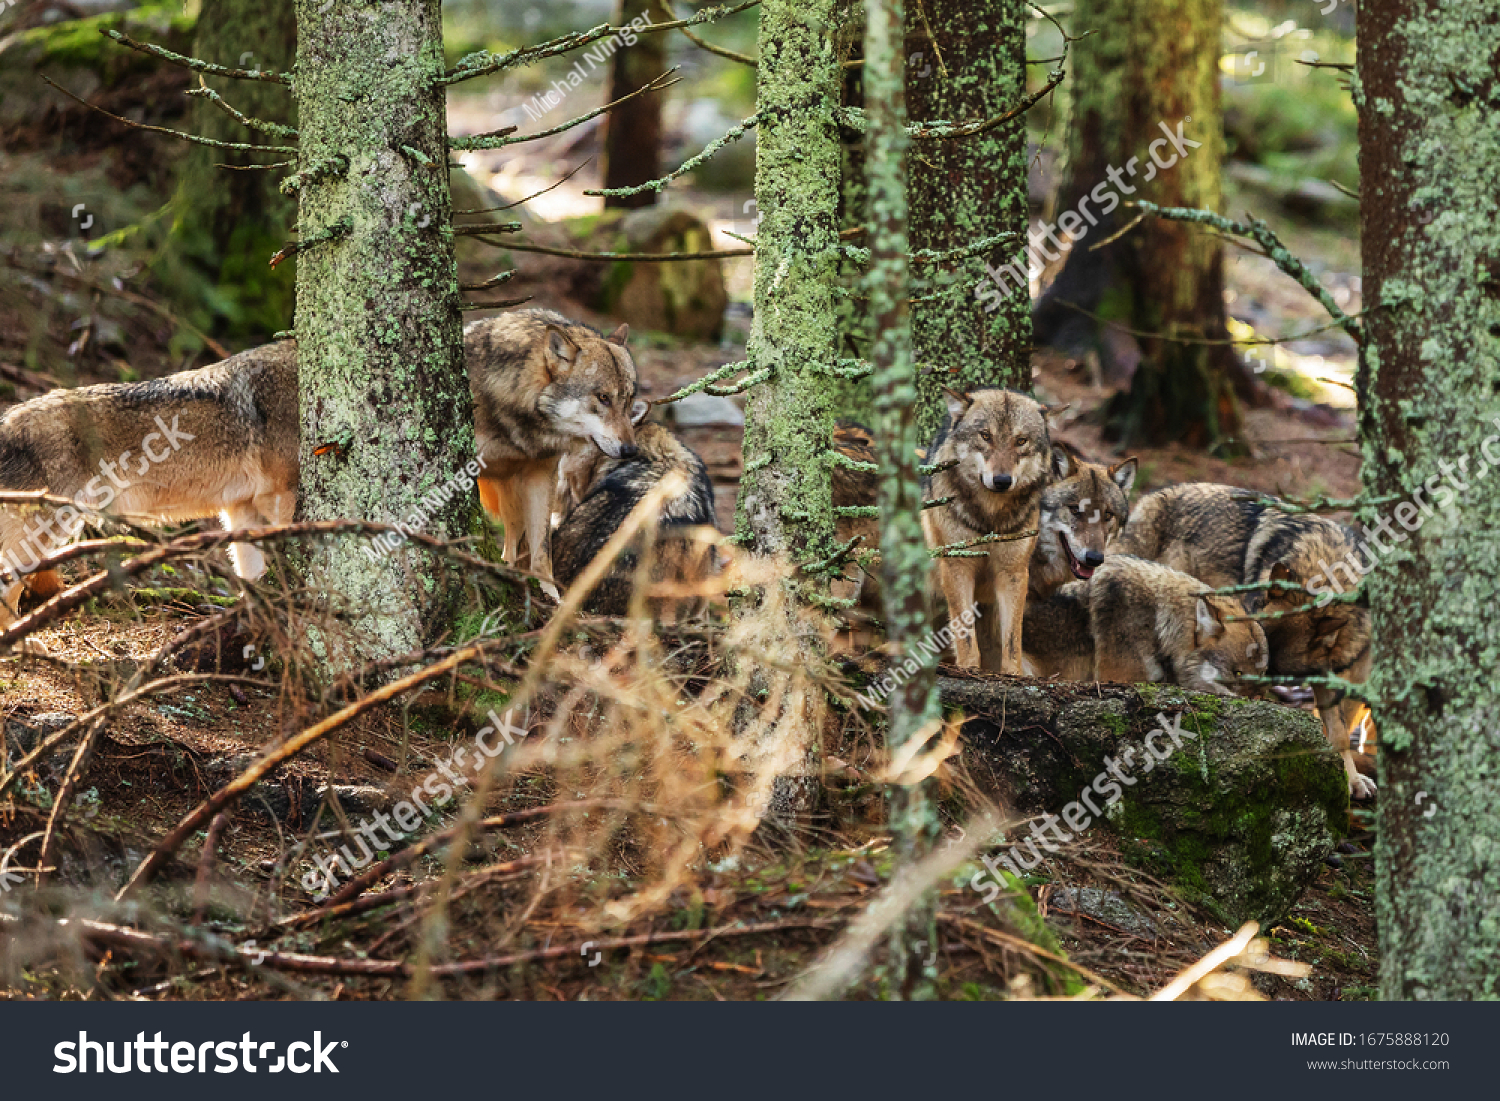 gray wolf (Canis lupus)  showed up in the old forest